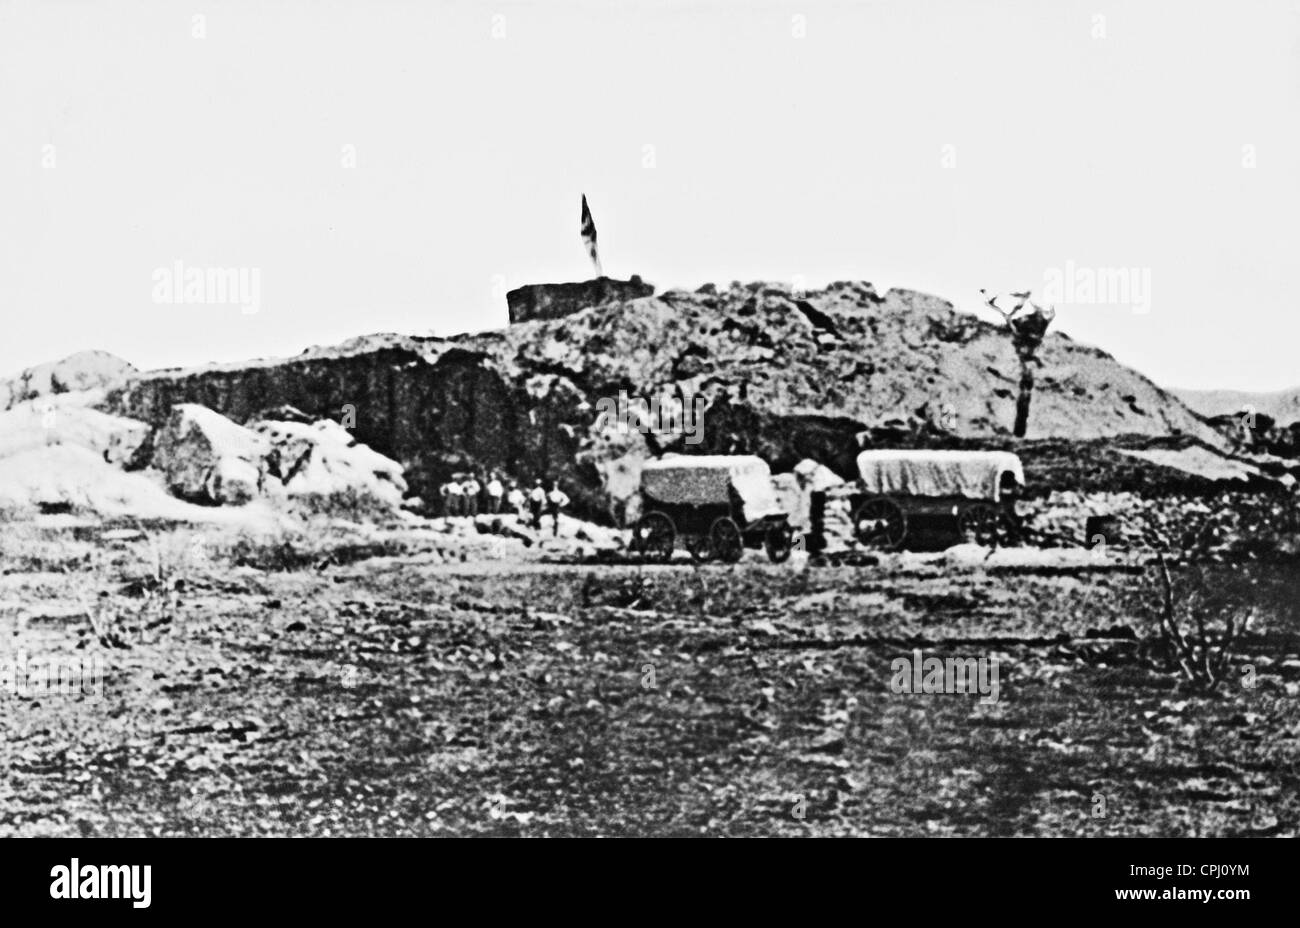 Wilhelmsfeste fortress near Tsaobis, 1889 Stock Photo